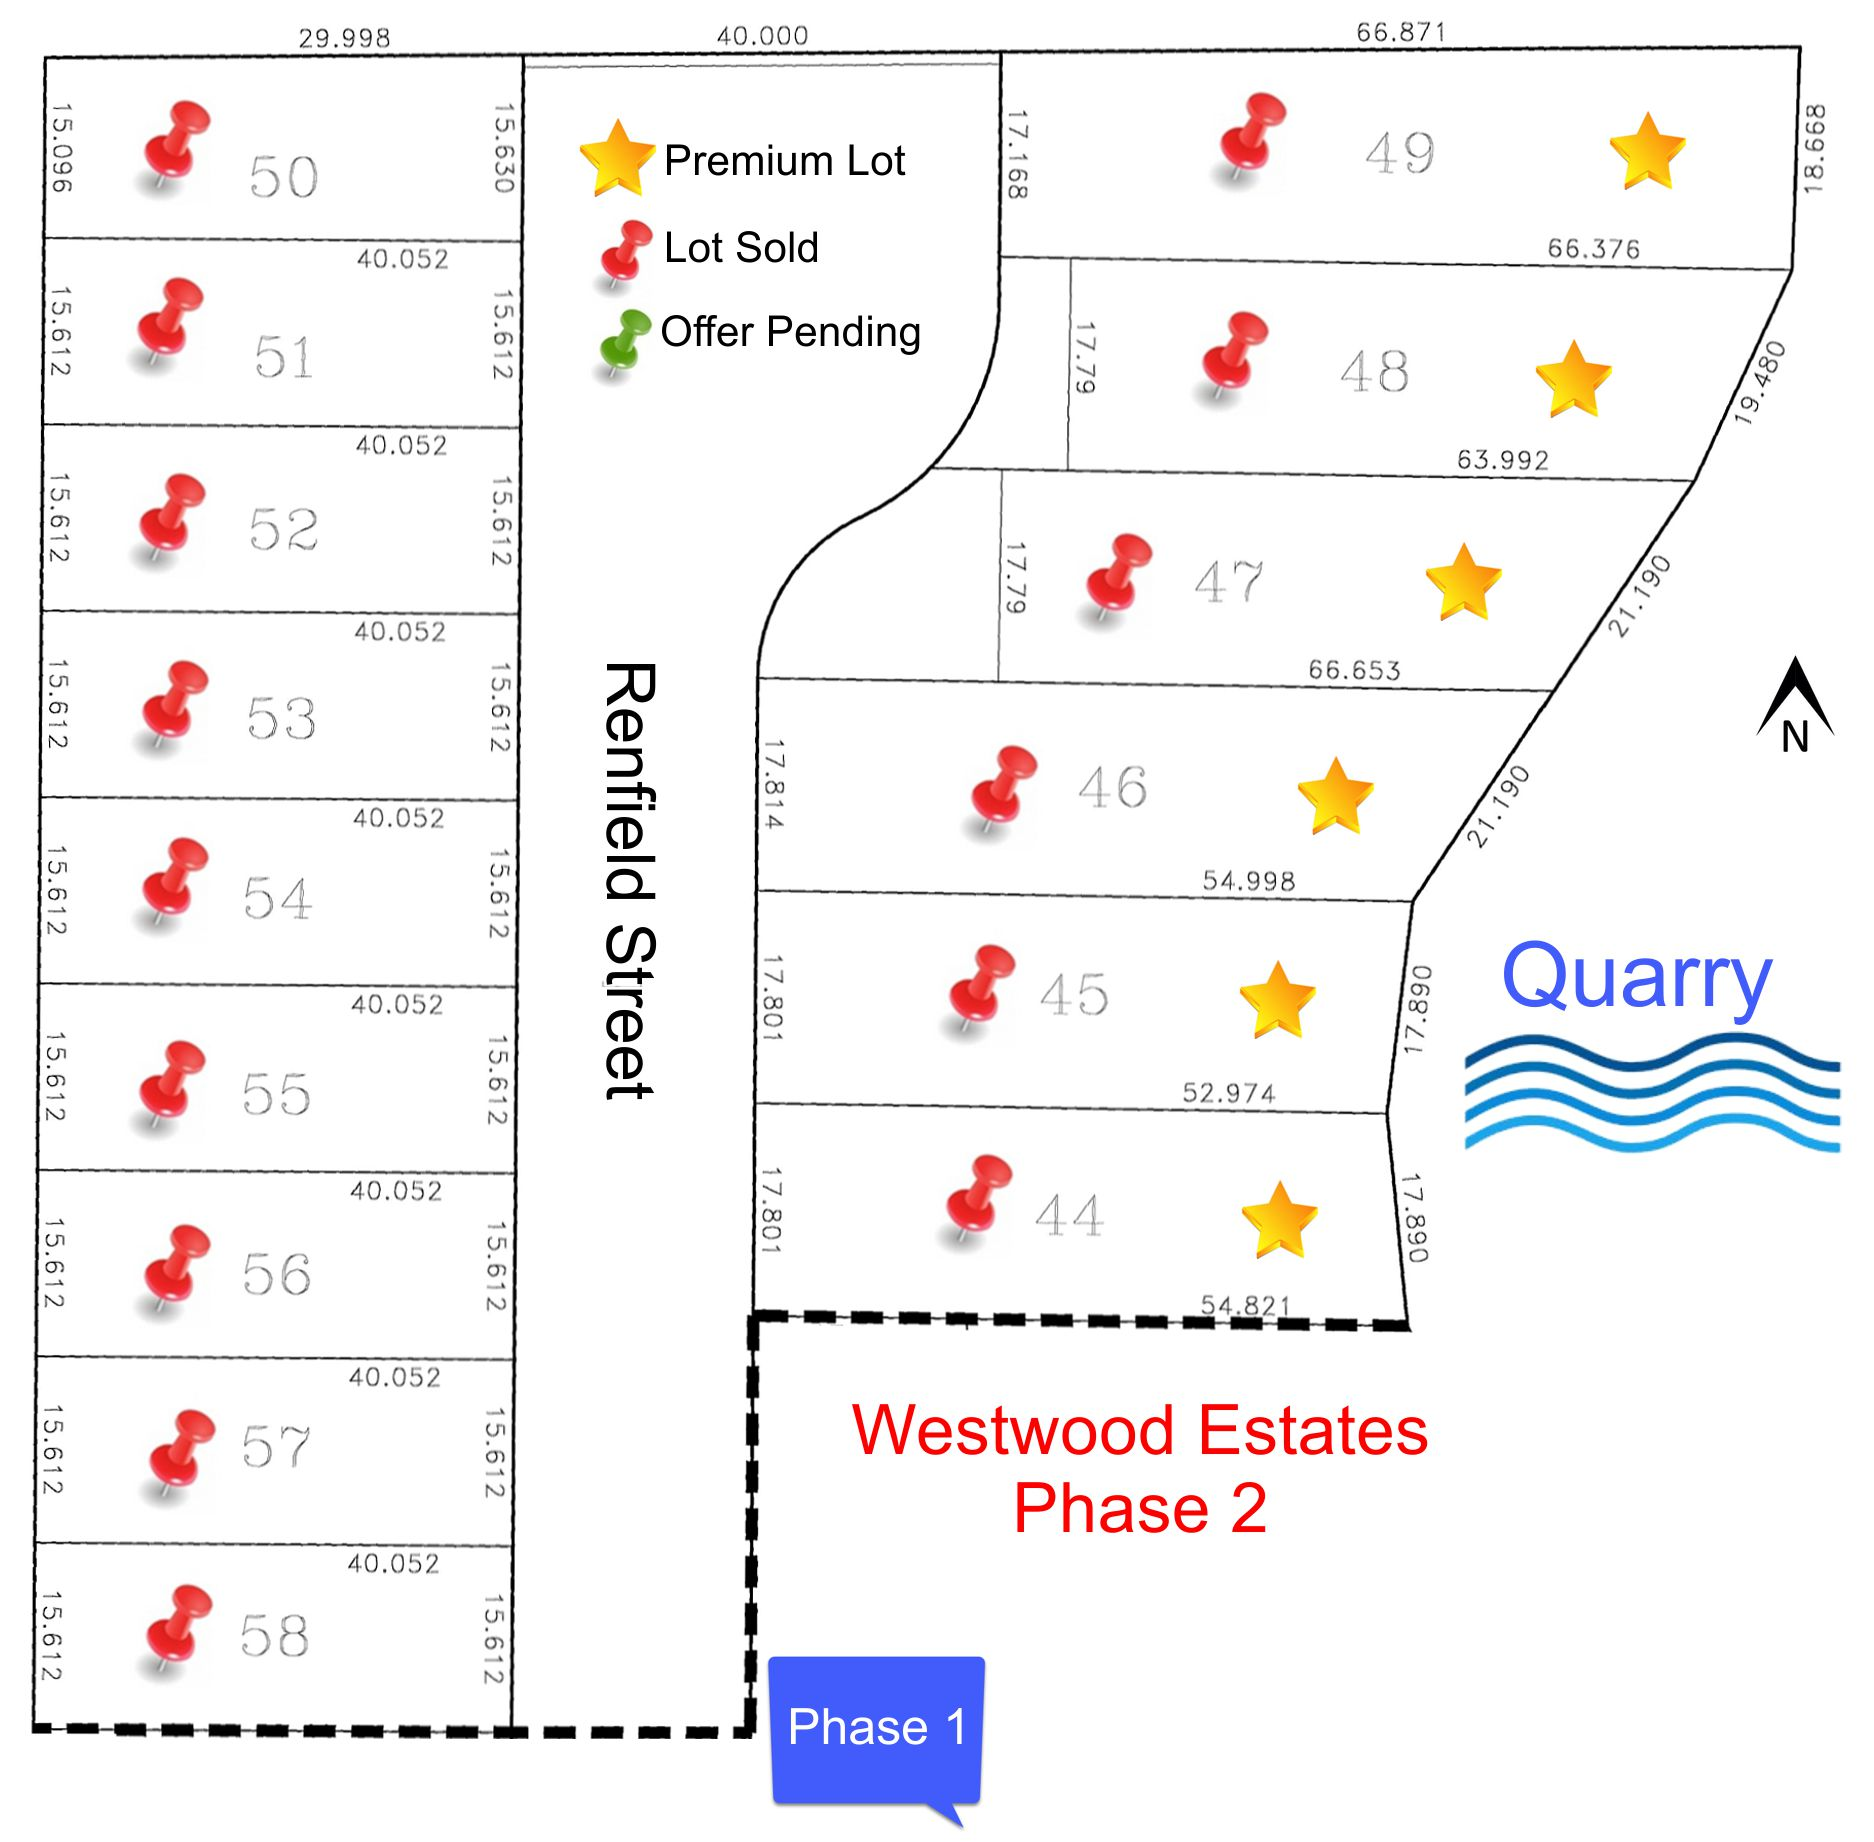 Westwood Estates Phase 2